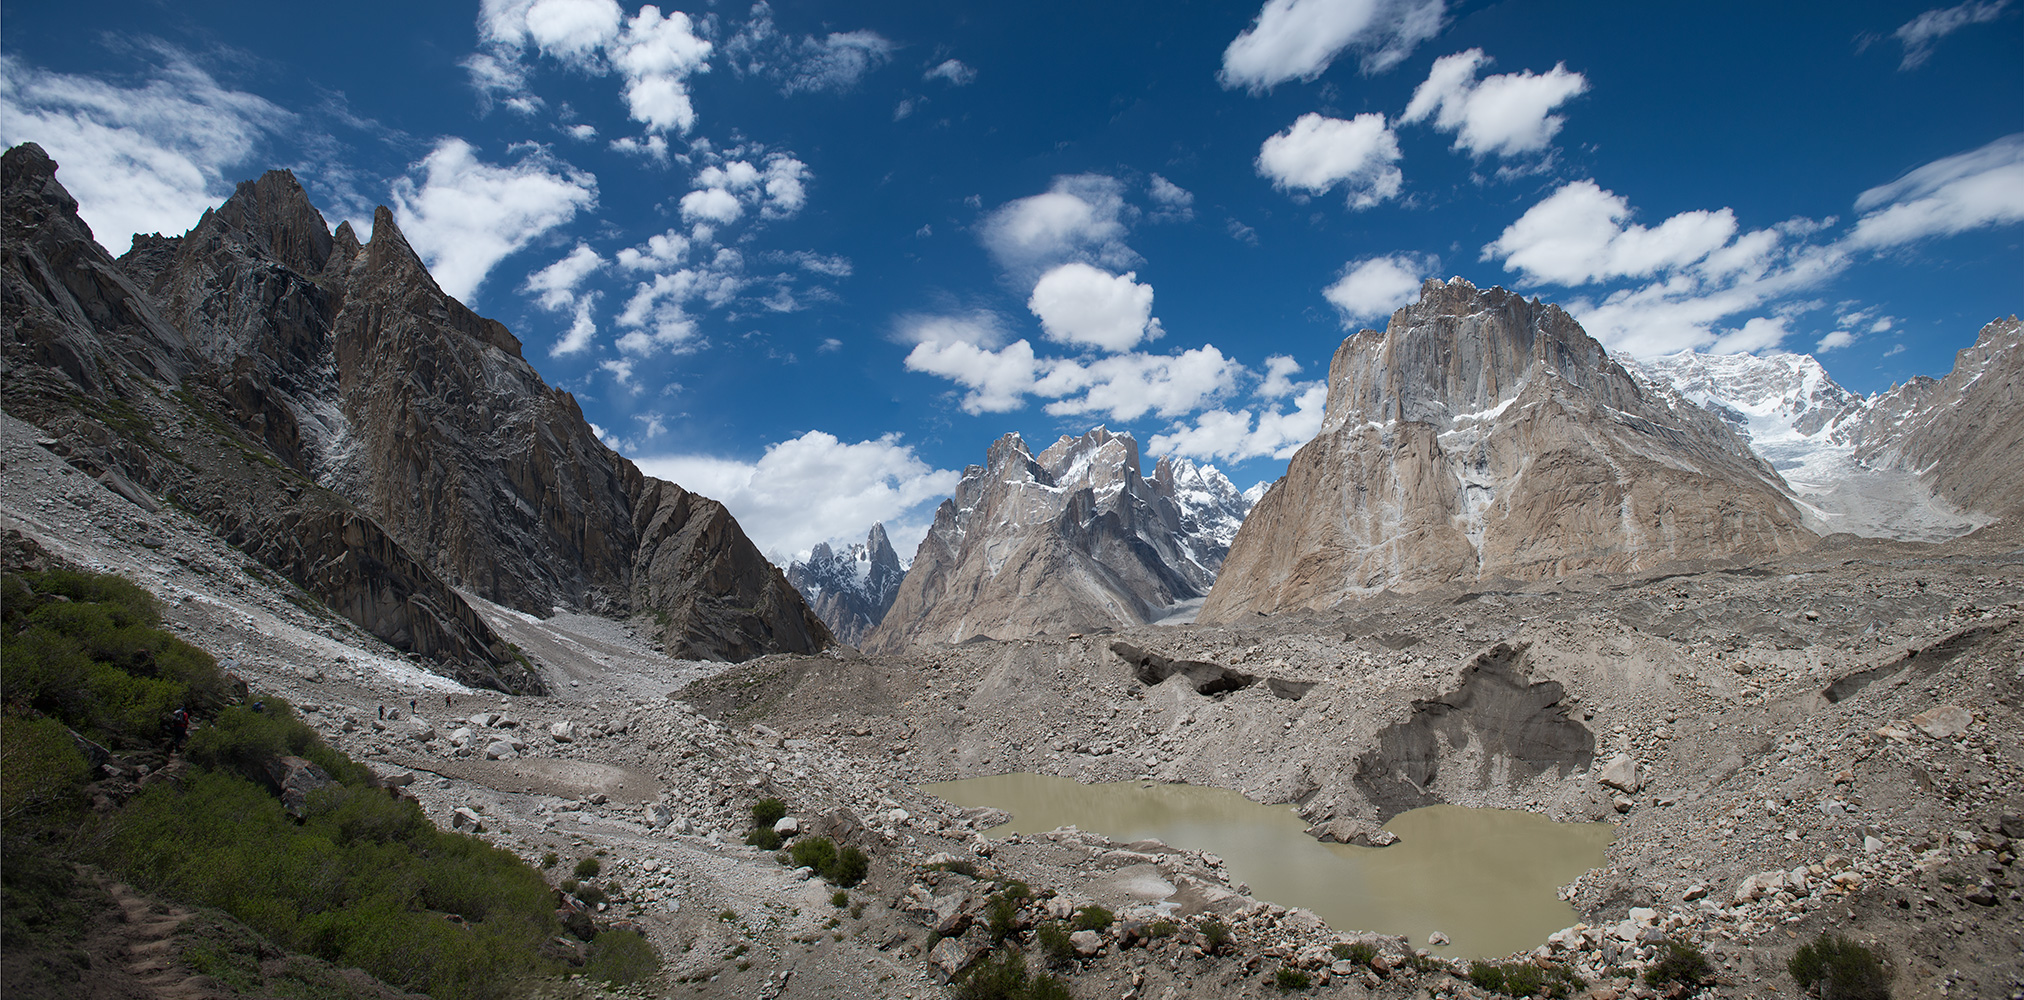 Setting off down valley from Urdokas with, from the left, Uli Biaho, the Trango Towers, Cathedral Spire, the Biale Glacier and Biale Peak (6841m)